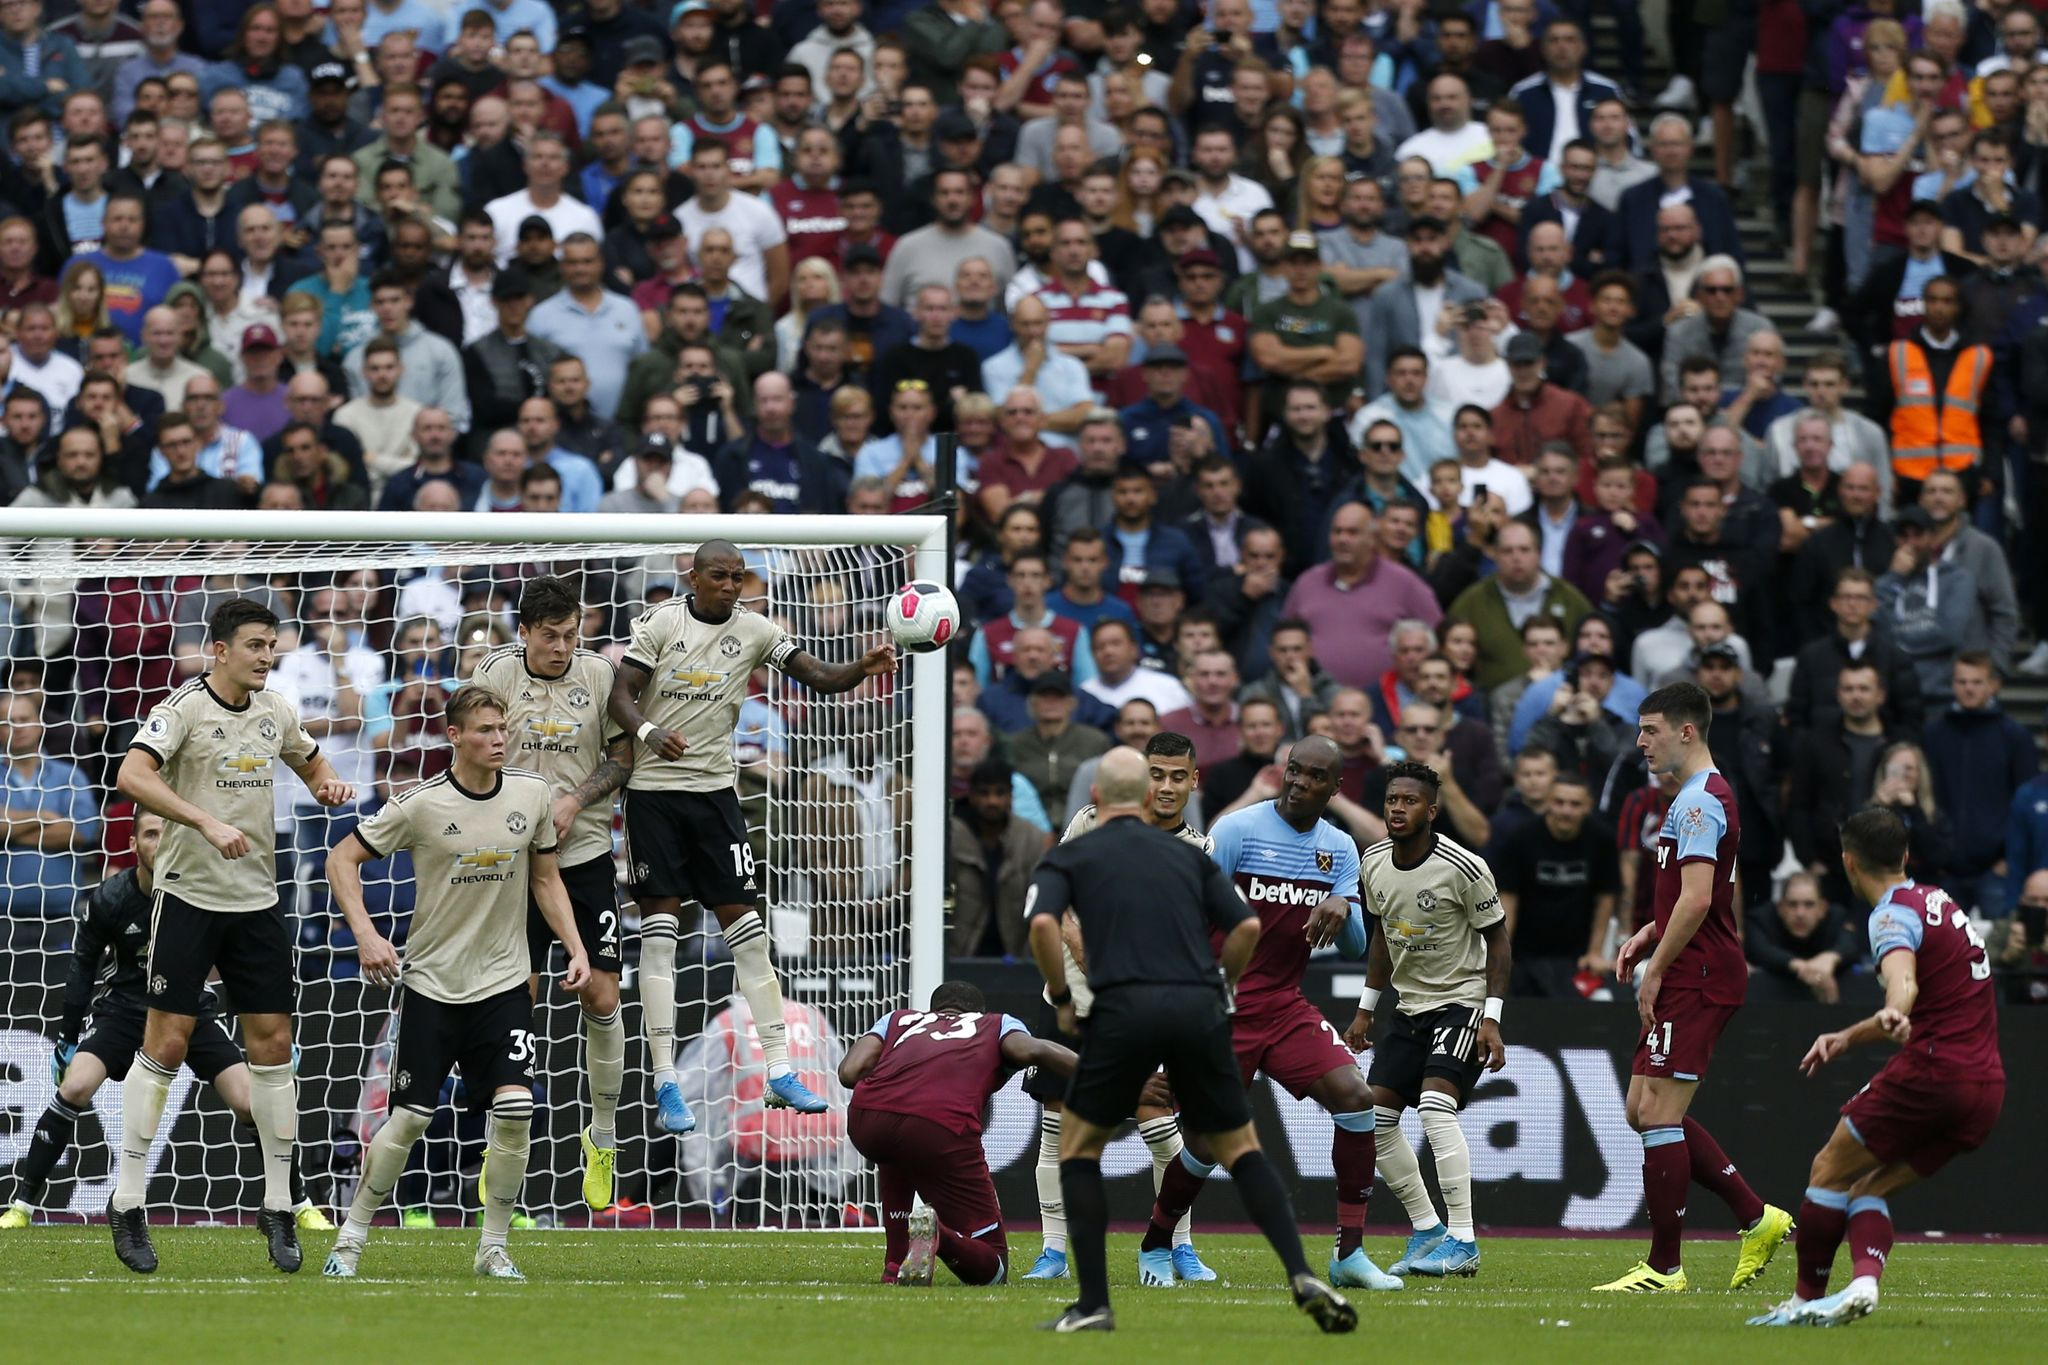 West Ham defeated Manchester United and reaches six undefeated games - Notitarde